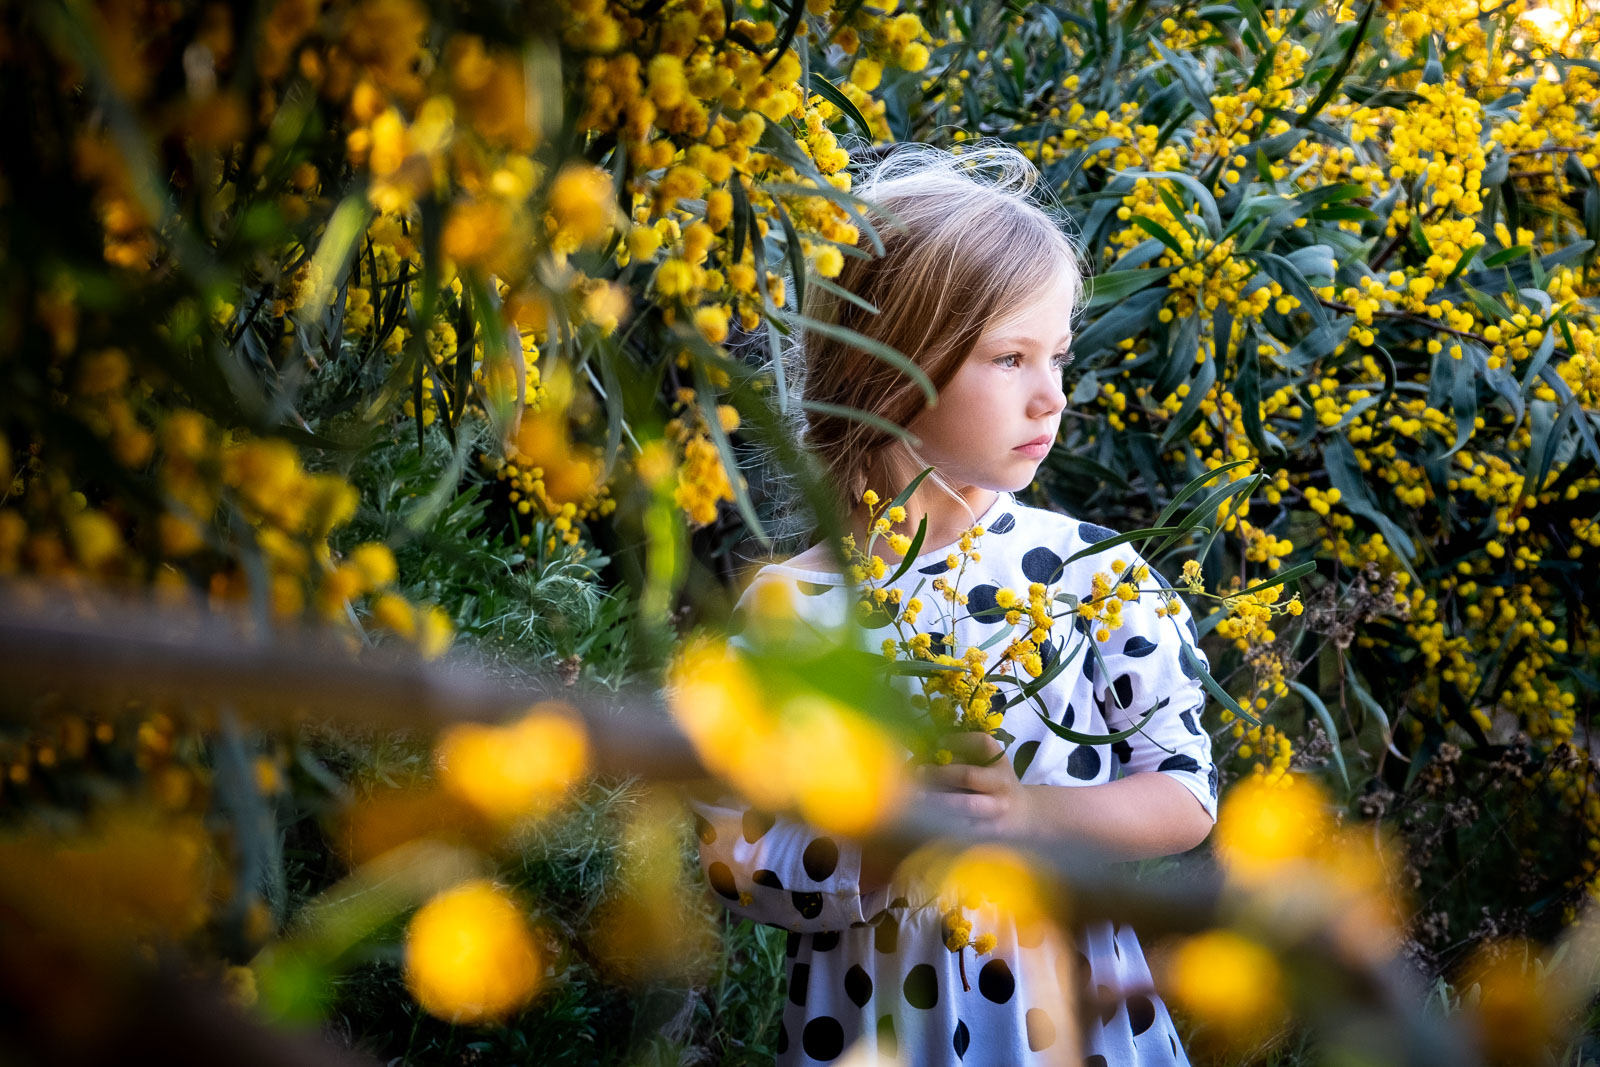 Unexpected Backdrop- Flower bed yellow flowers girl standing looking into distance karlee hooper